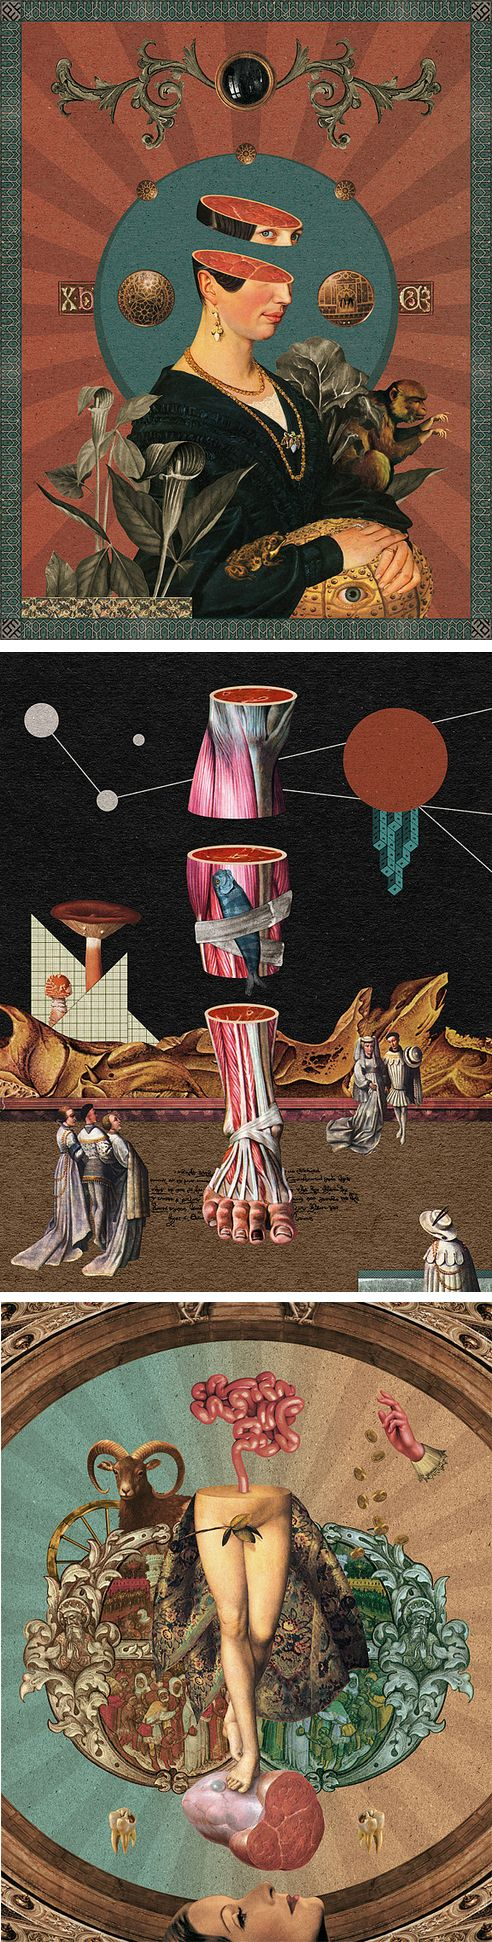 Collages by randy mora | il·lustracions | Pinterest | Anatomía ...